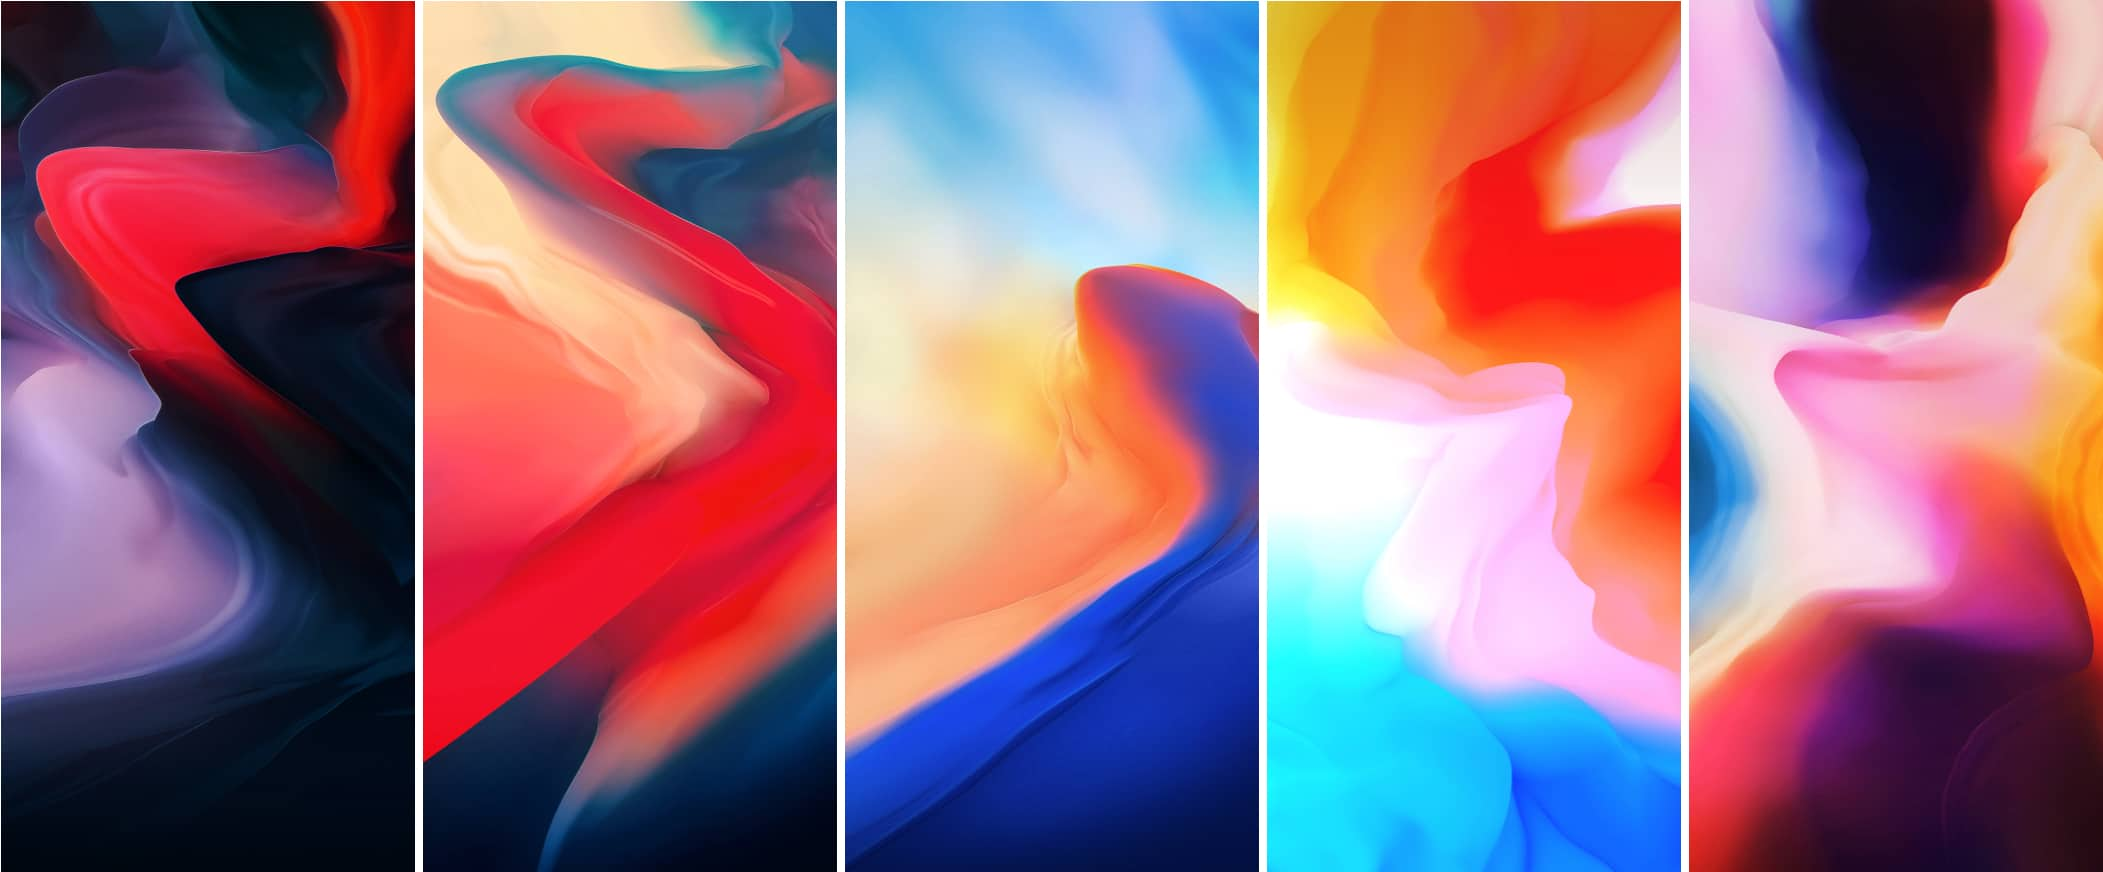 OnePlus 6 wallpapers for iPhone X